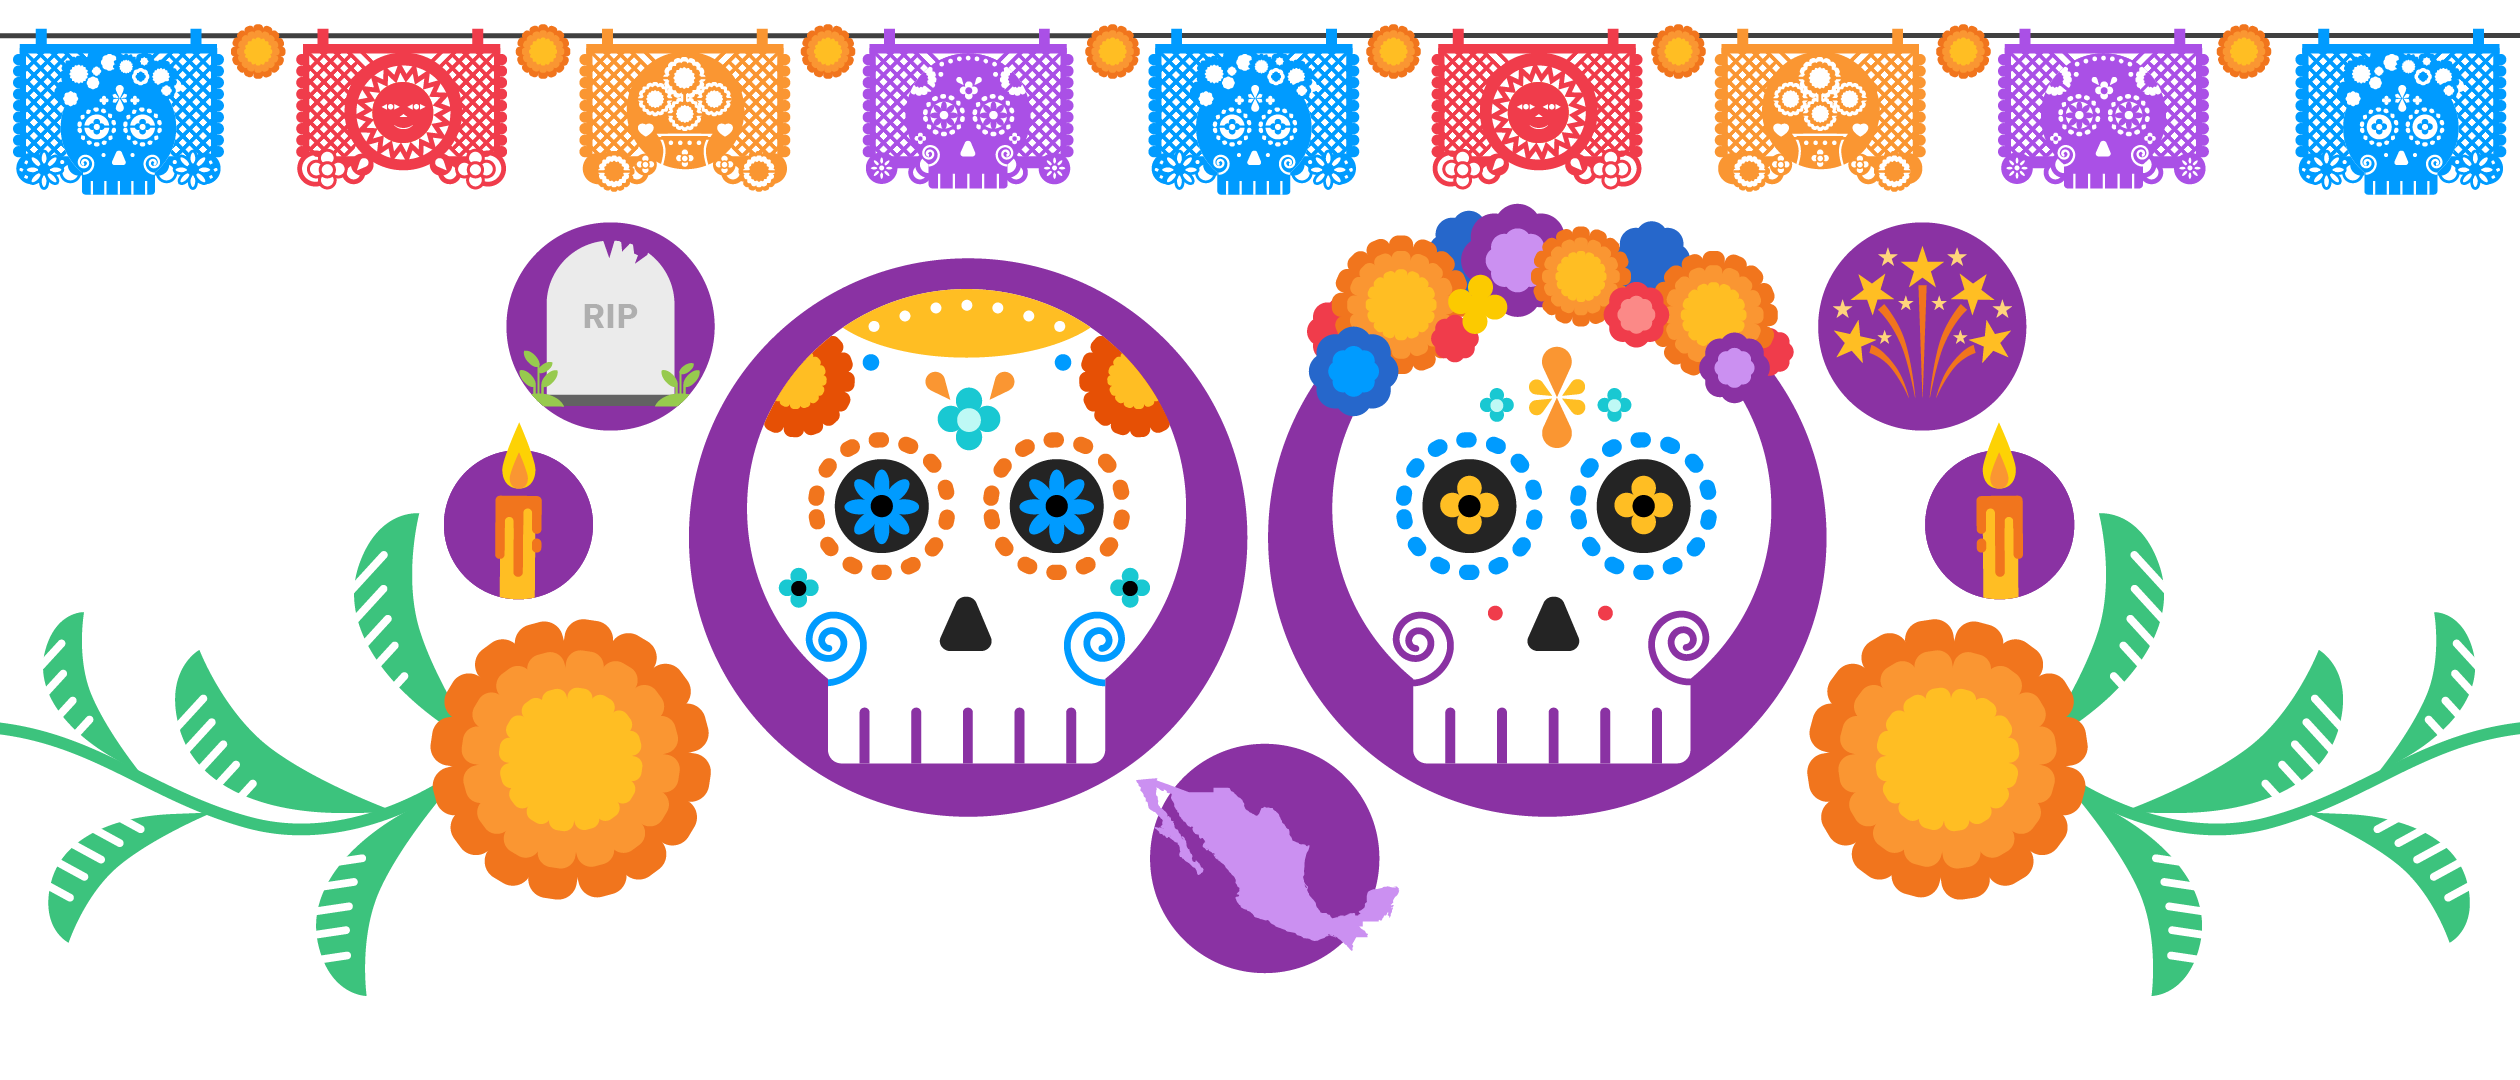 The Day of the Dead: The Aztec holiday explained in graphics